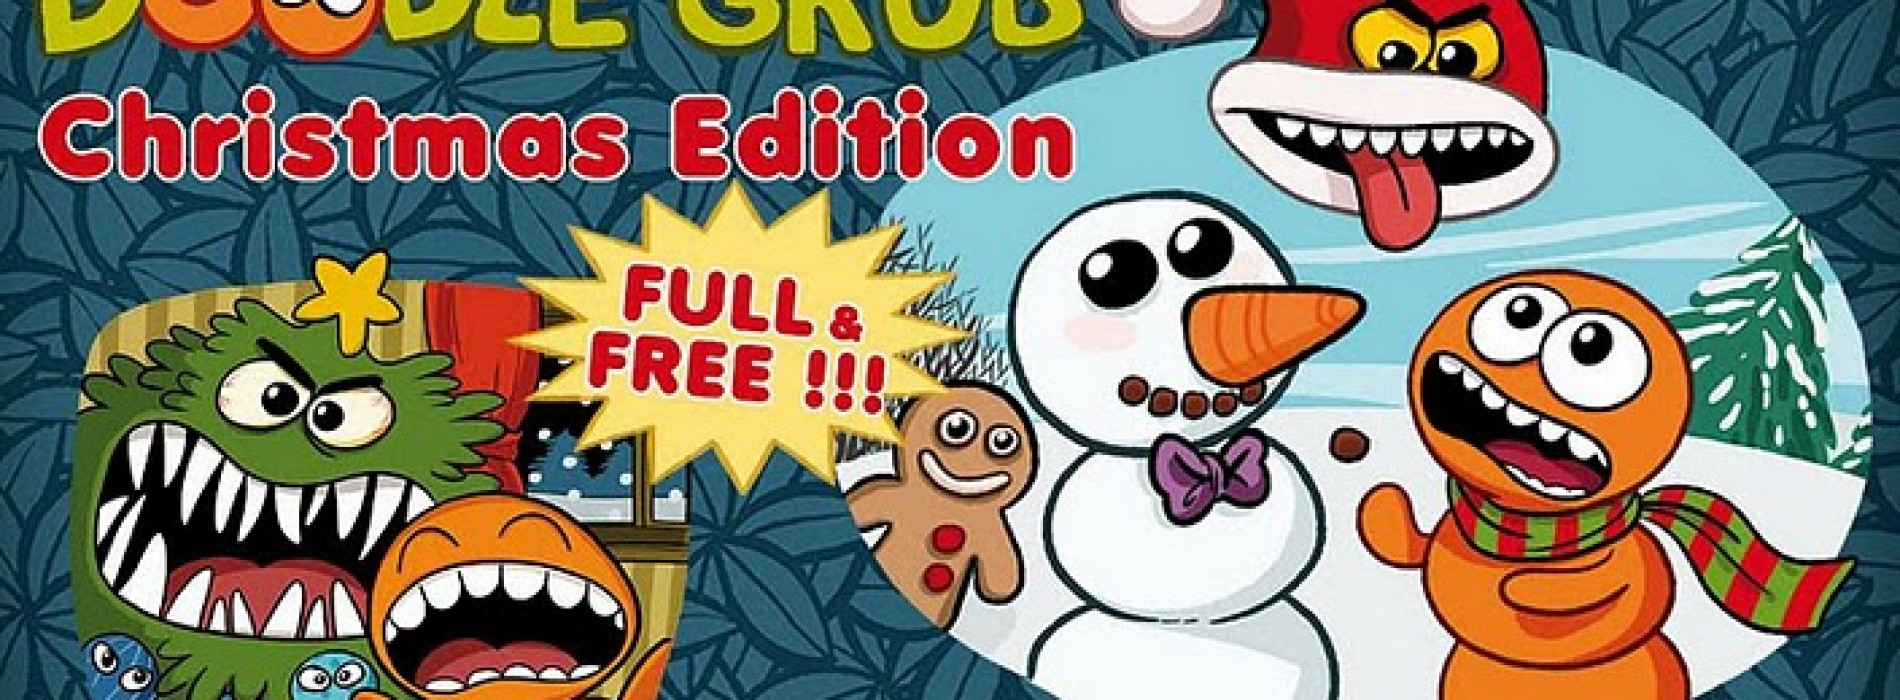 Doodle Grub Christmas Edition puts a wintry spin on classic Snakes game